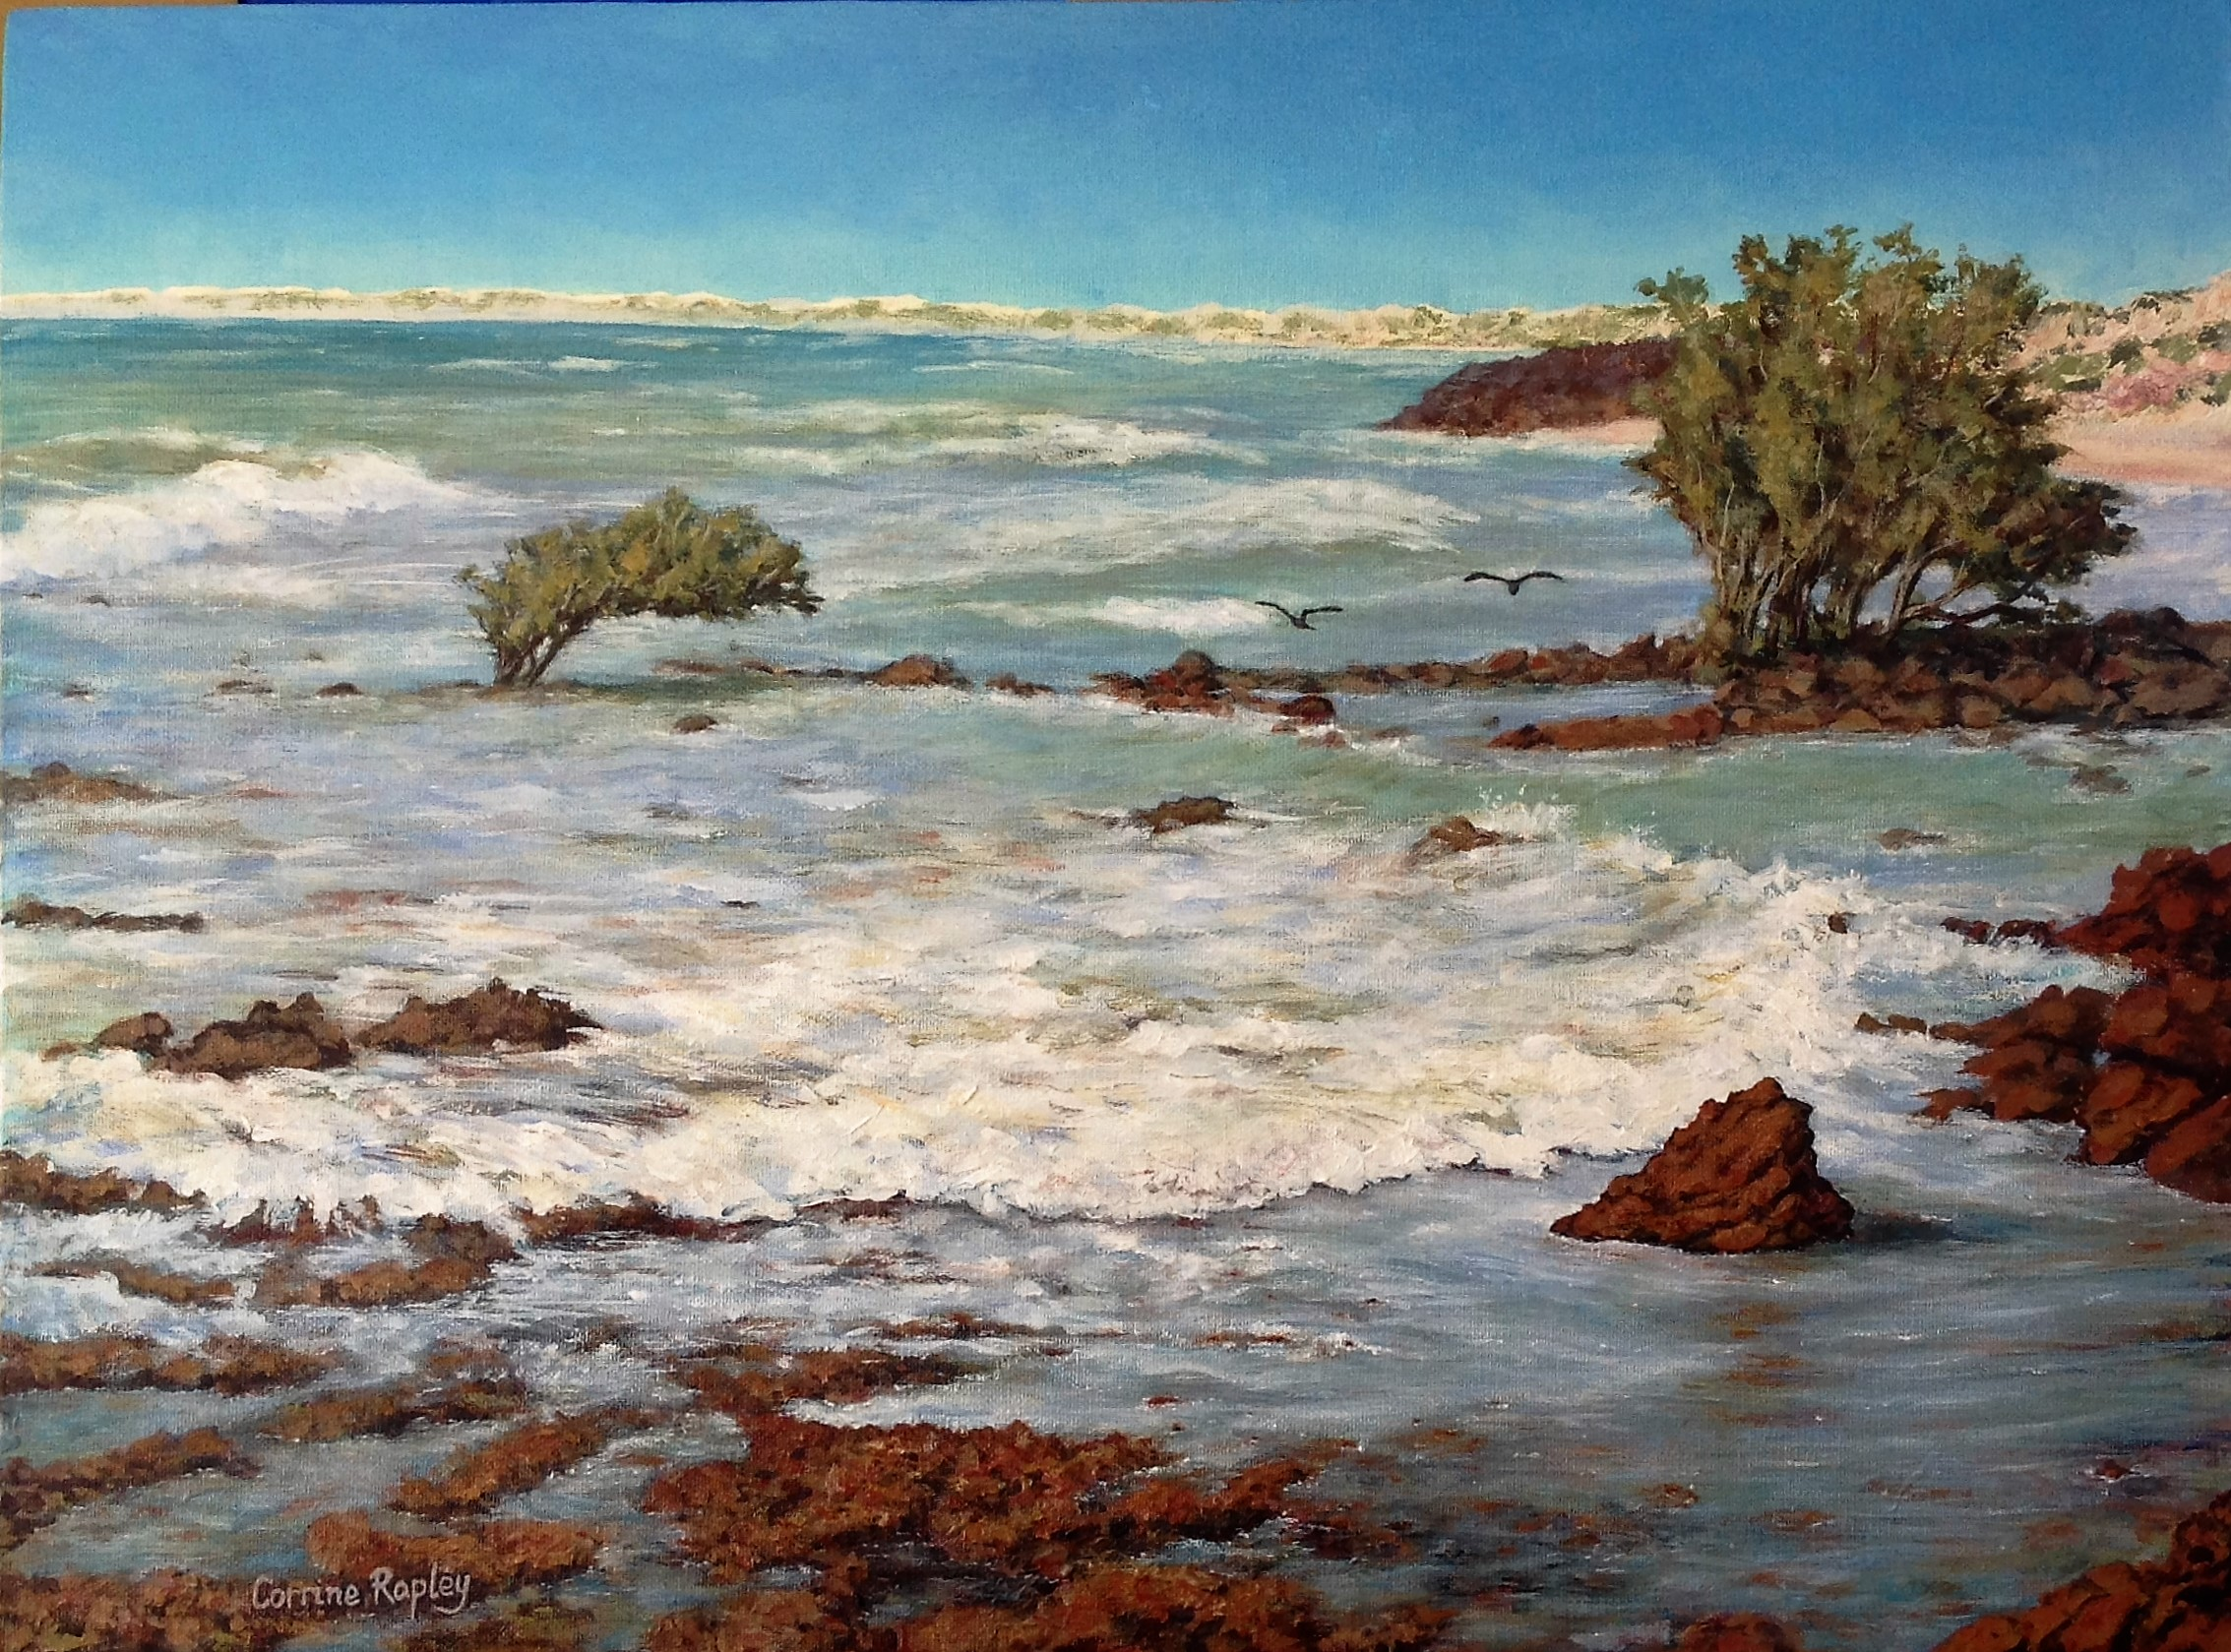 Incoming Tide, Cape Keraudren - $760